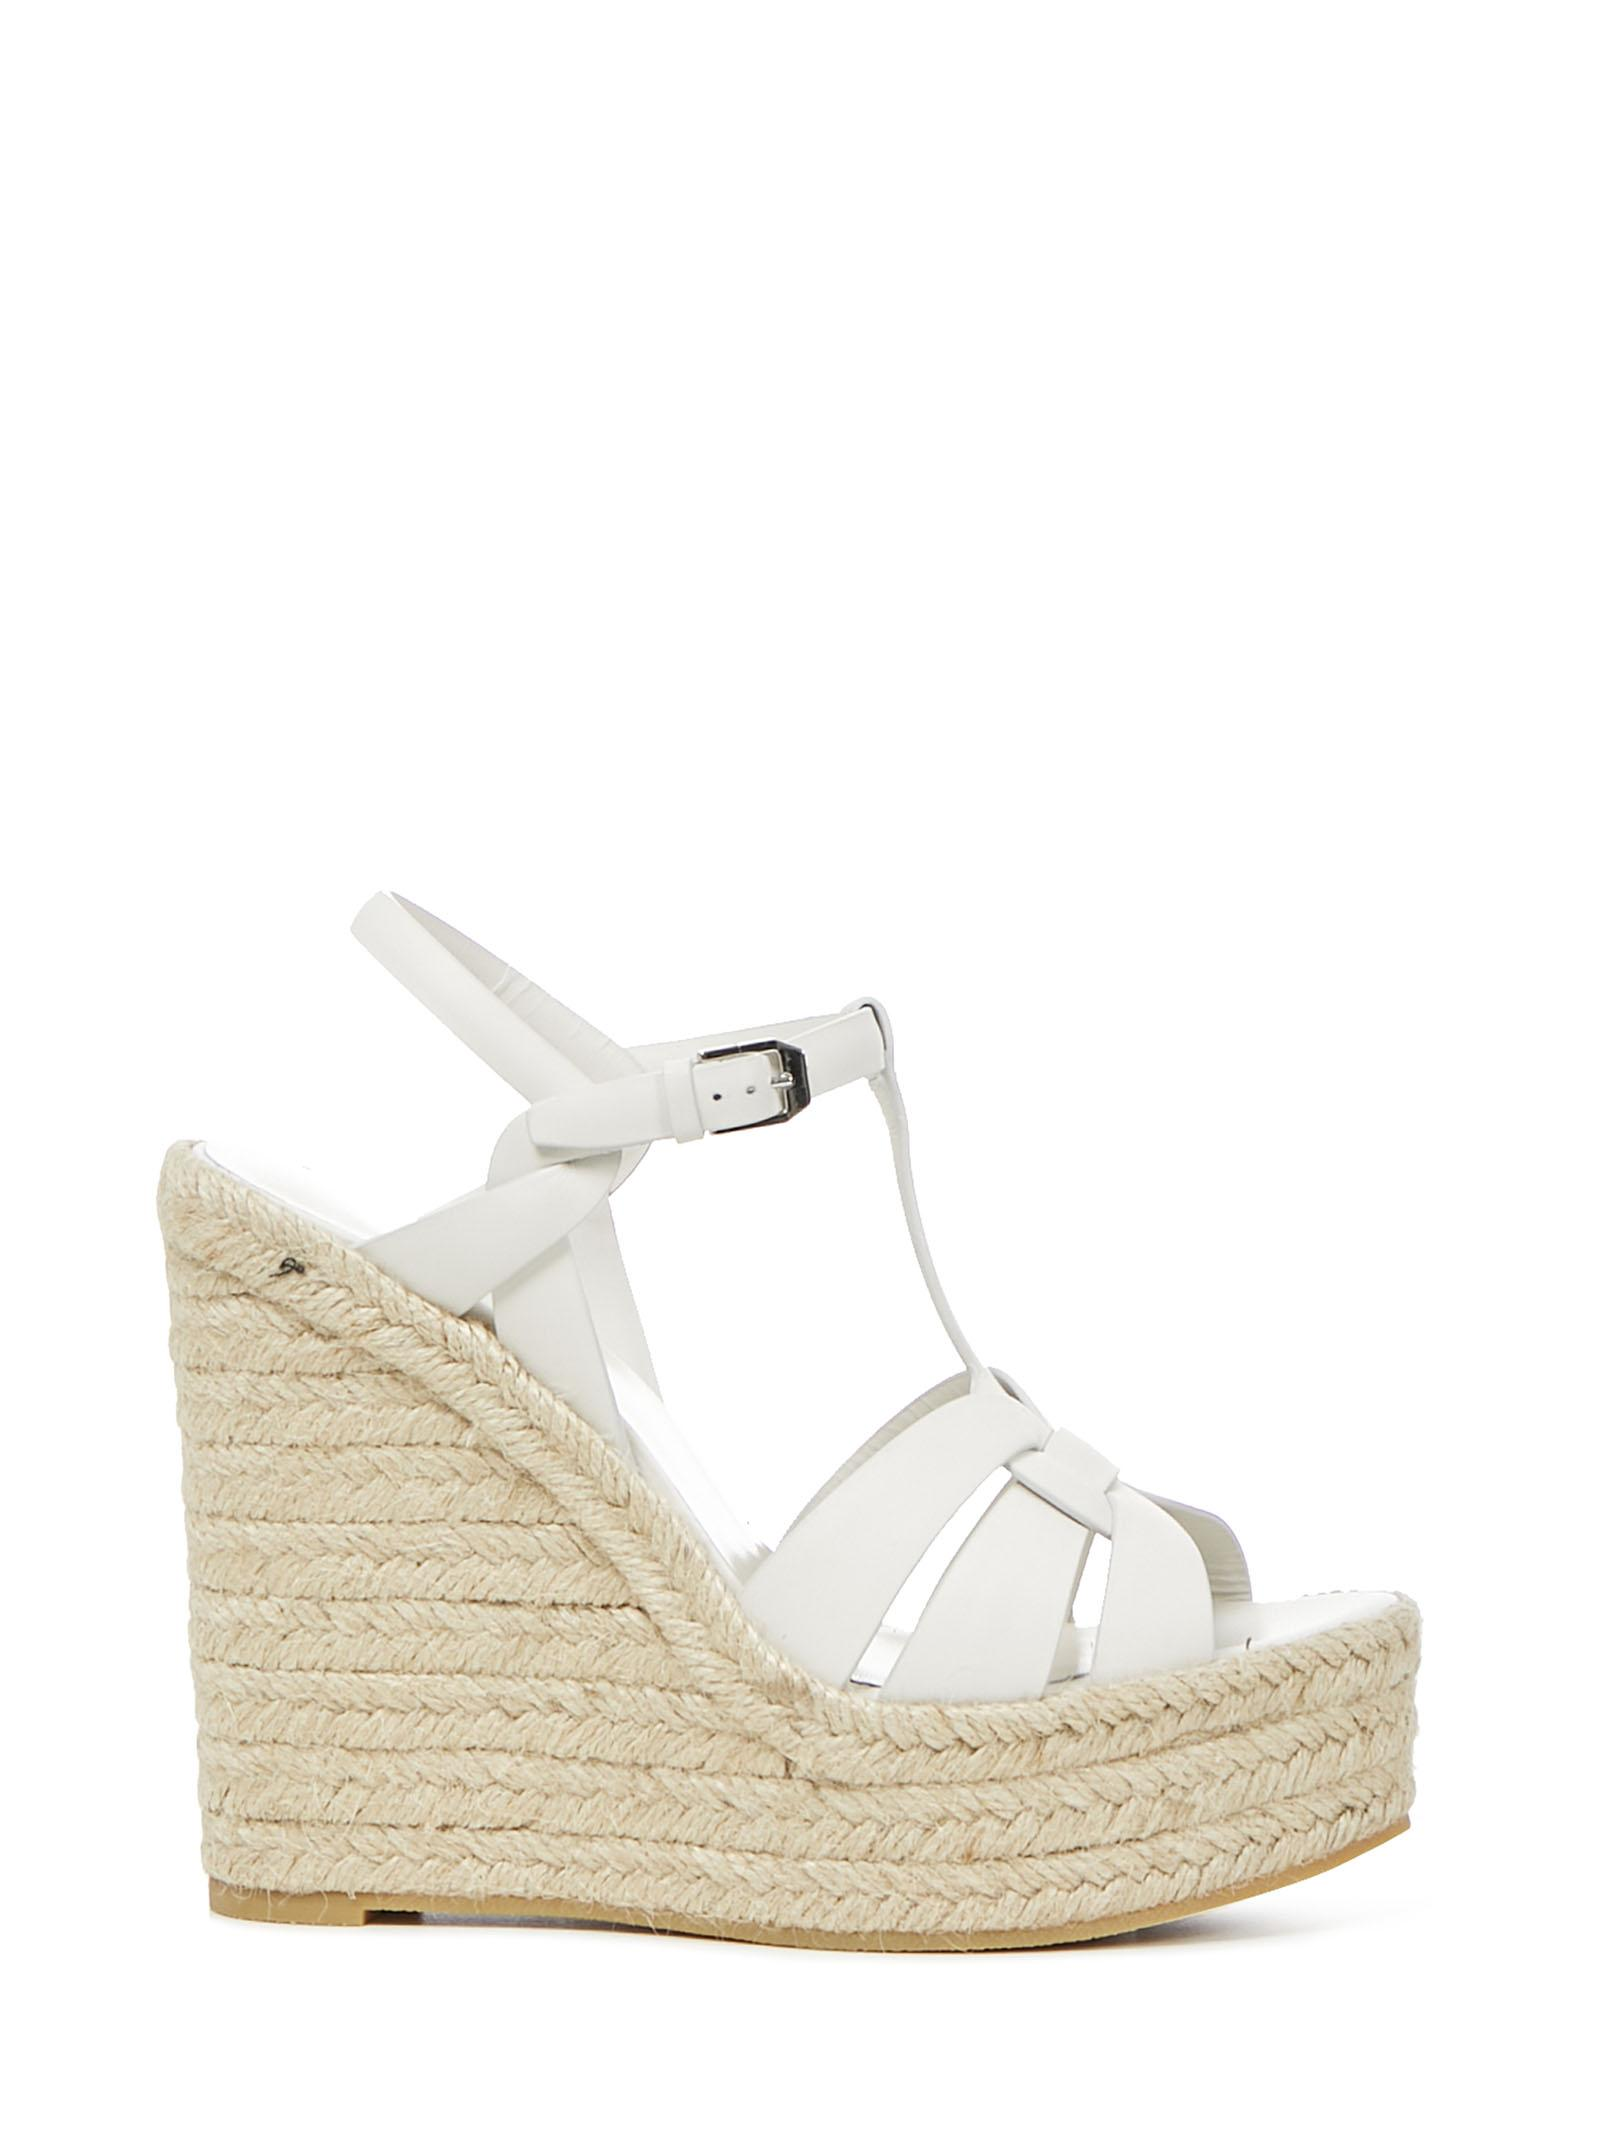 White Leather With Jute Rope Wedge Heel